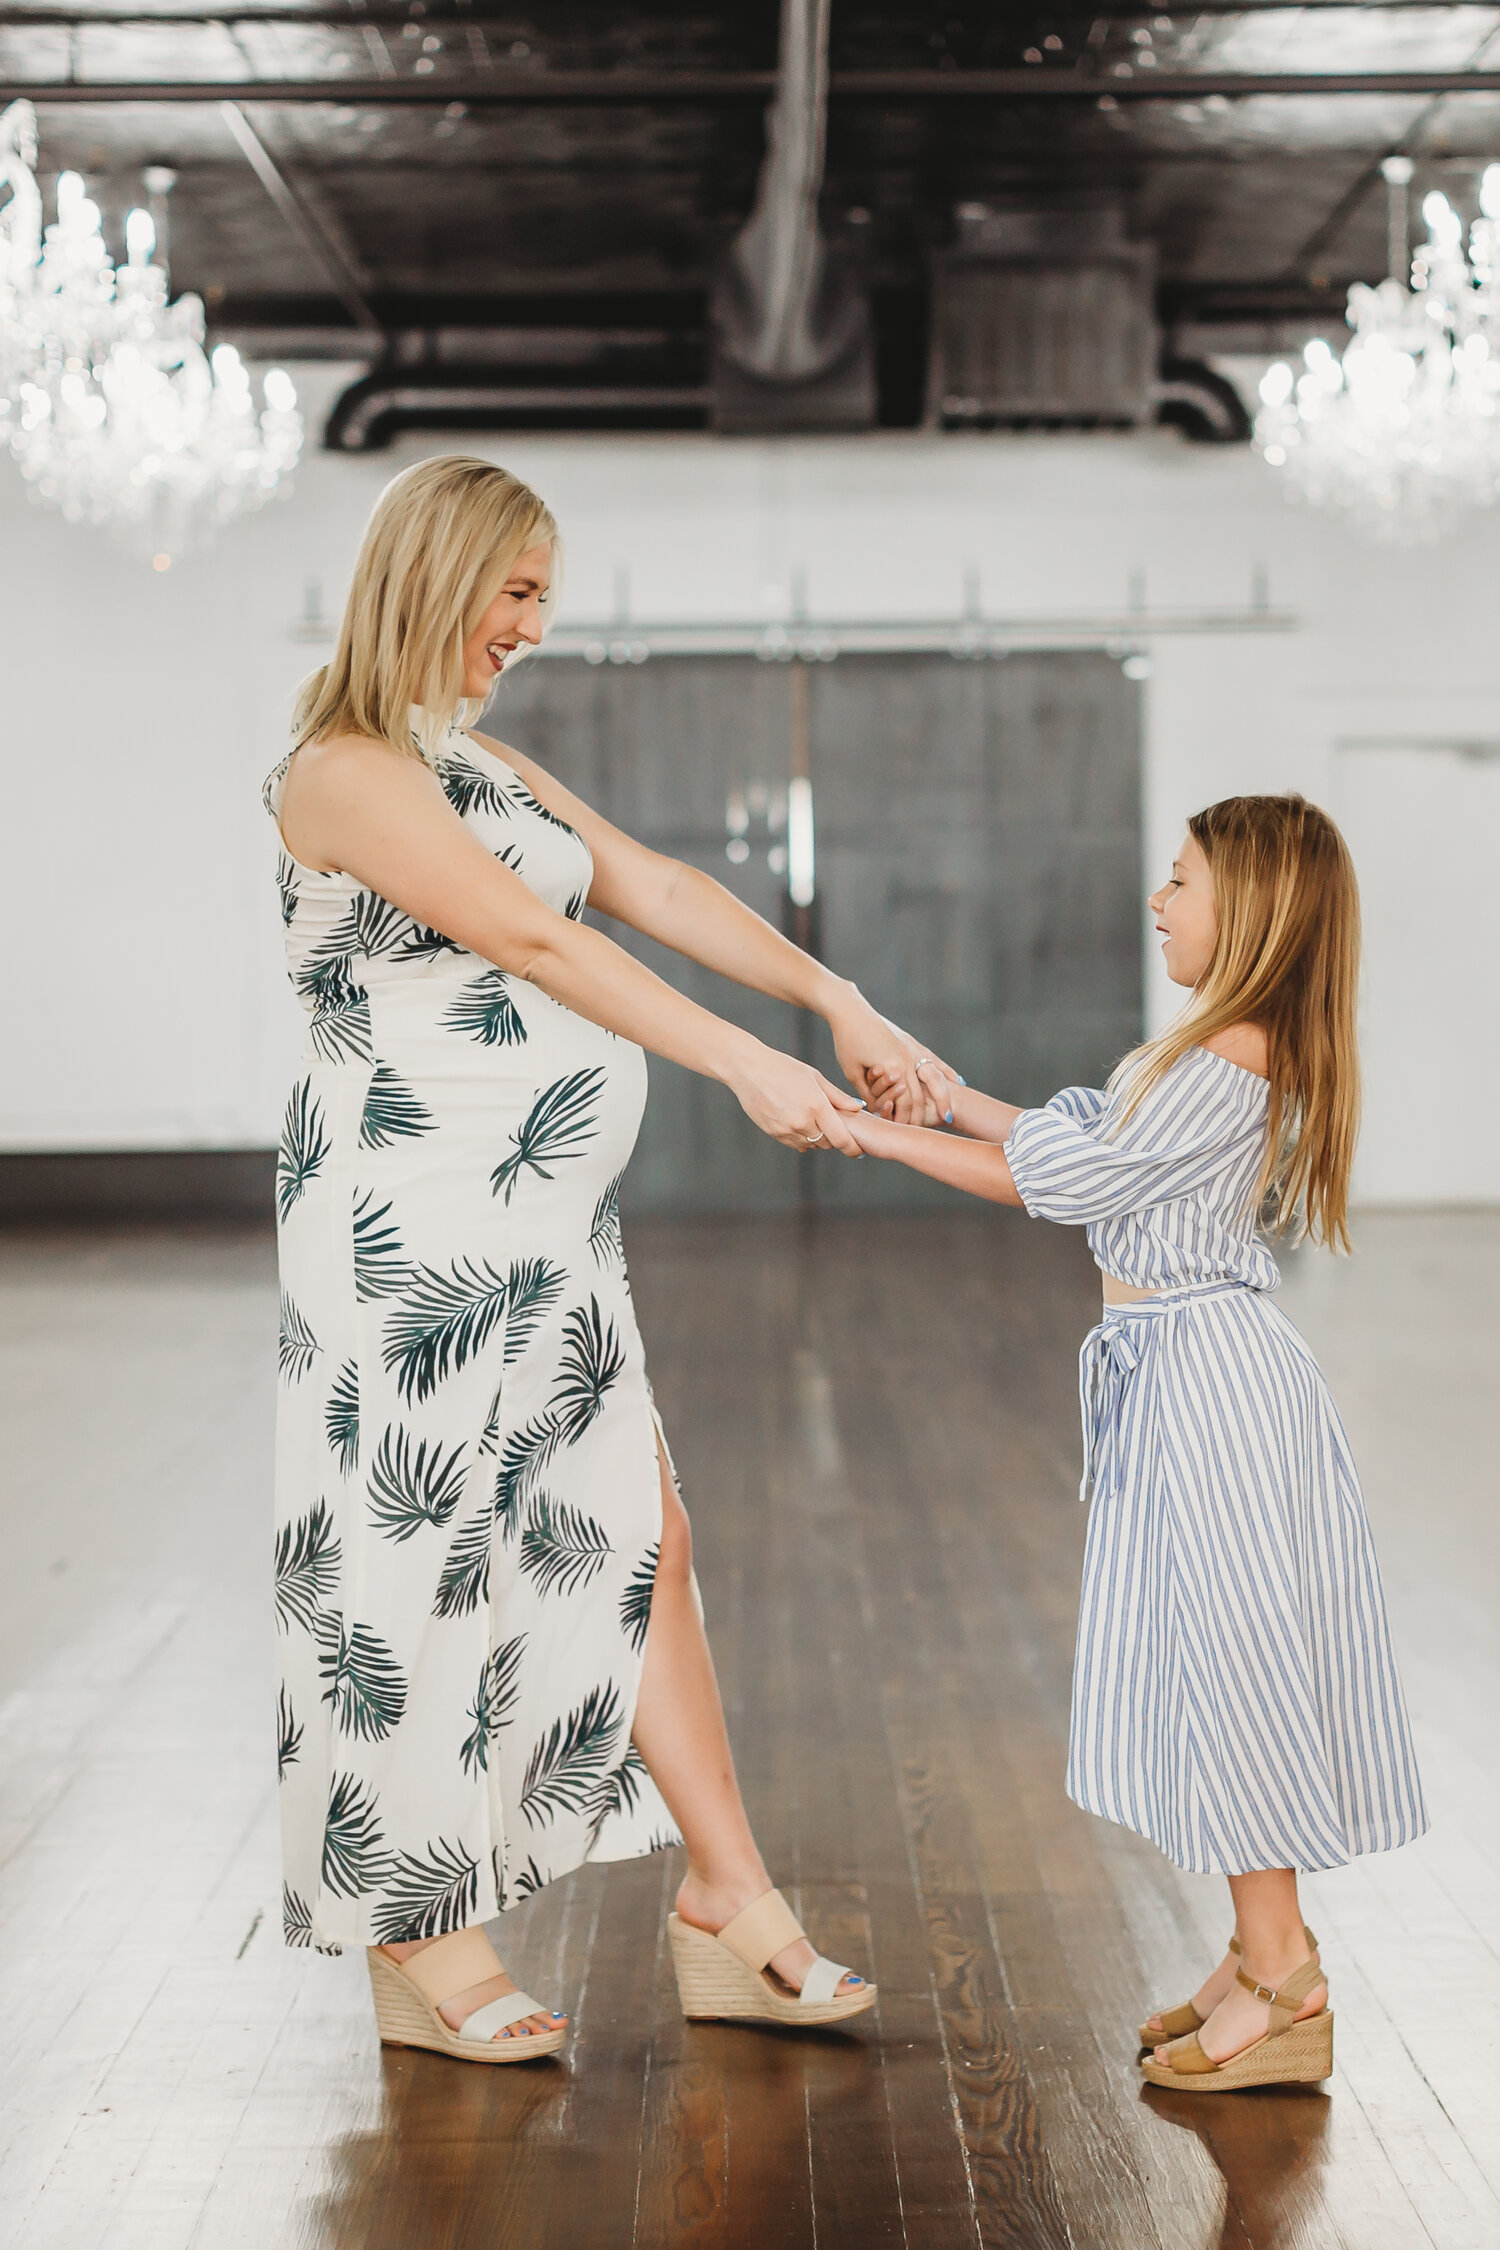 Dancing together and holding hands, this mother and daughter were so cute together #tealawardphotography #texasmaternityphotographysession #amarillophotographer #amarilloematernityphotographer #emotionalphotography #lifestylephotography #babyontheway #lifestyles #expectingmom #newaddition #sweetbaby #motherhoodmagic